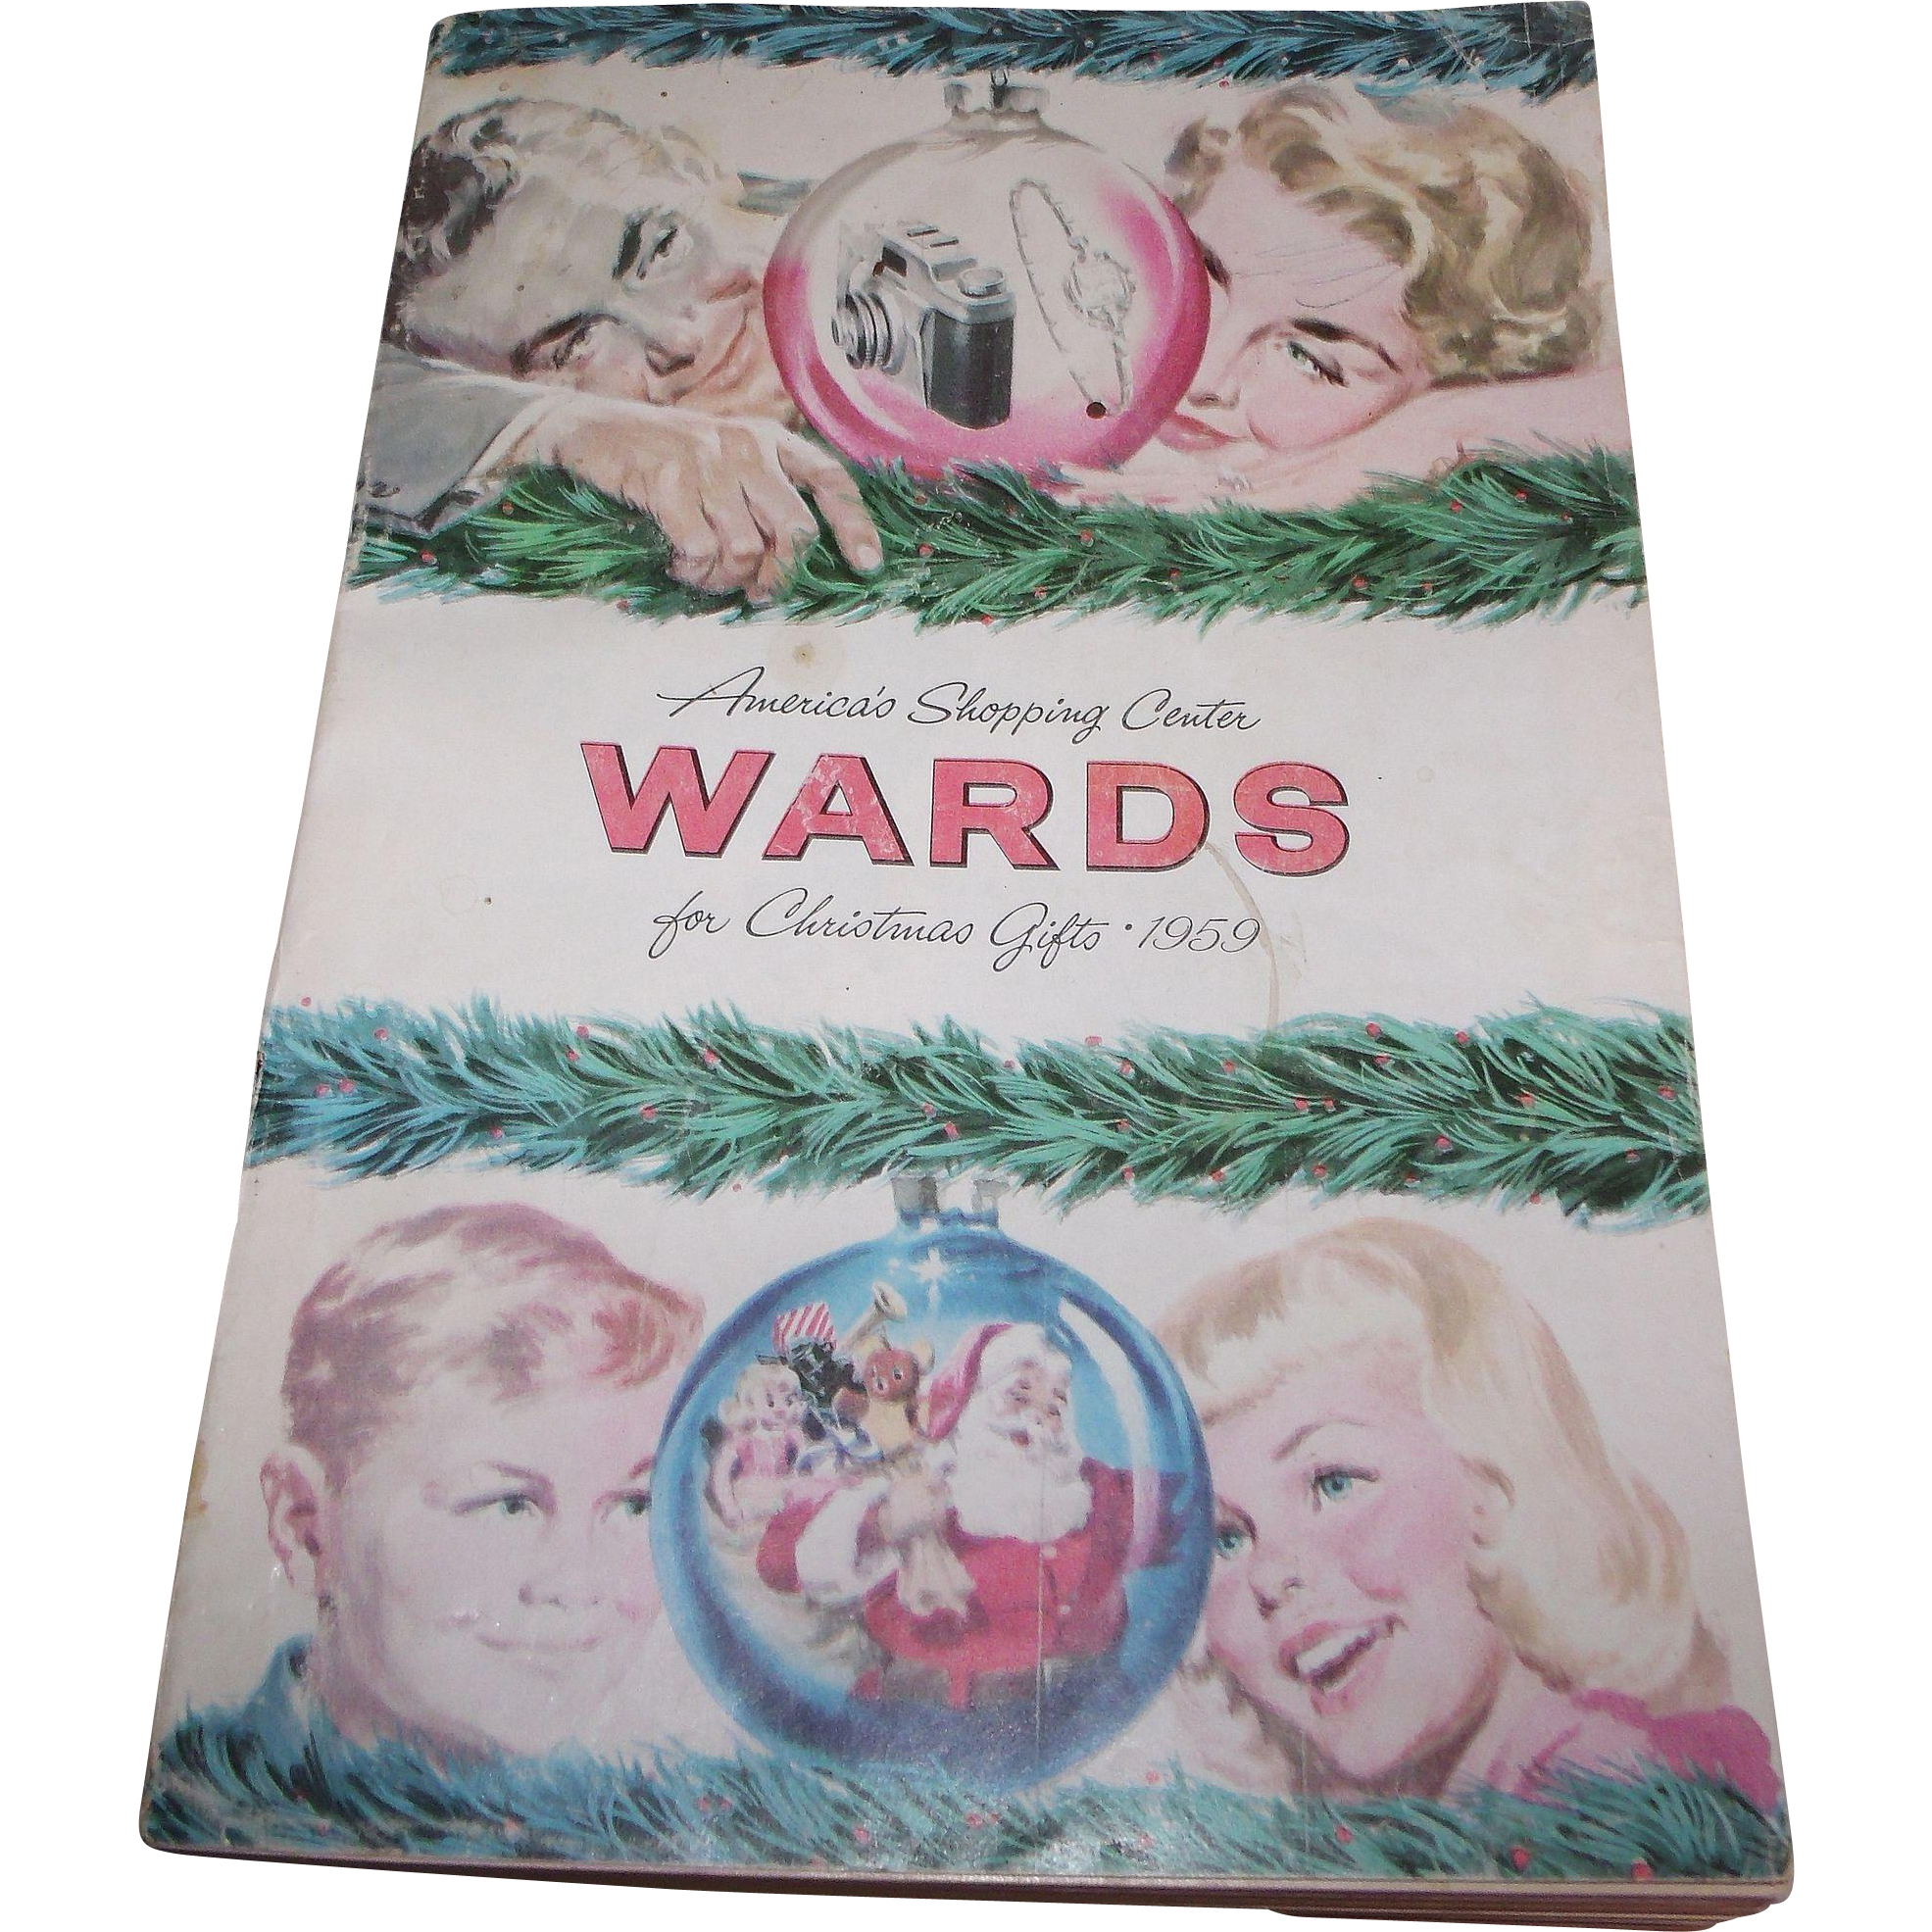 1959 Wards Christmas Catalog 555 Pages America's Shopping Center